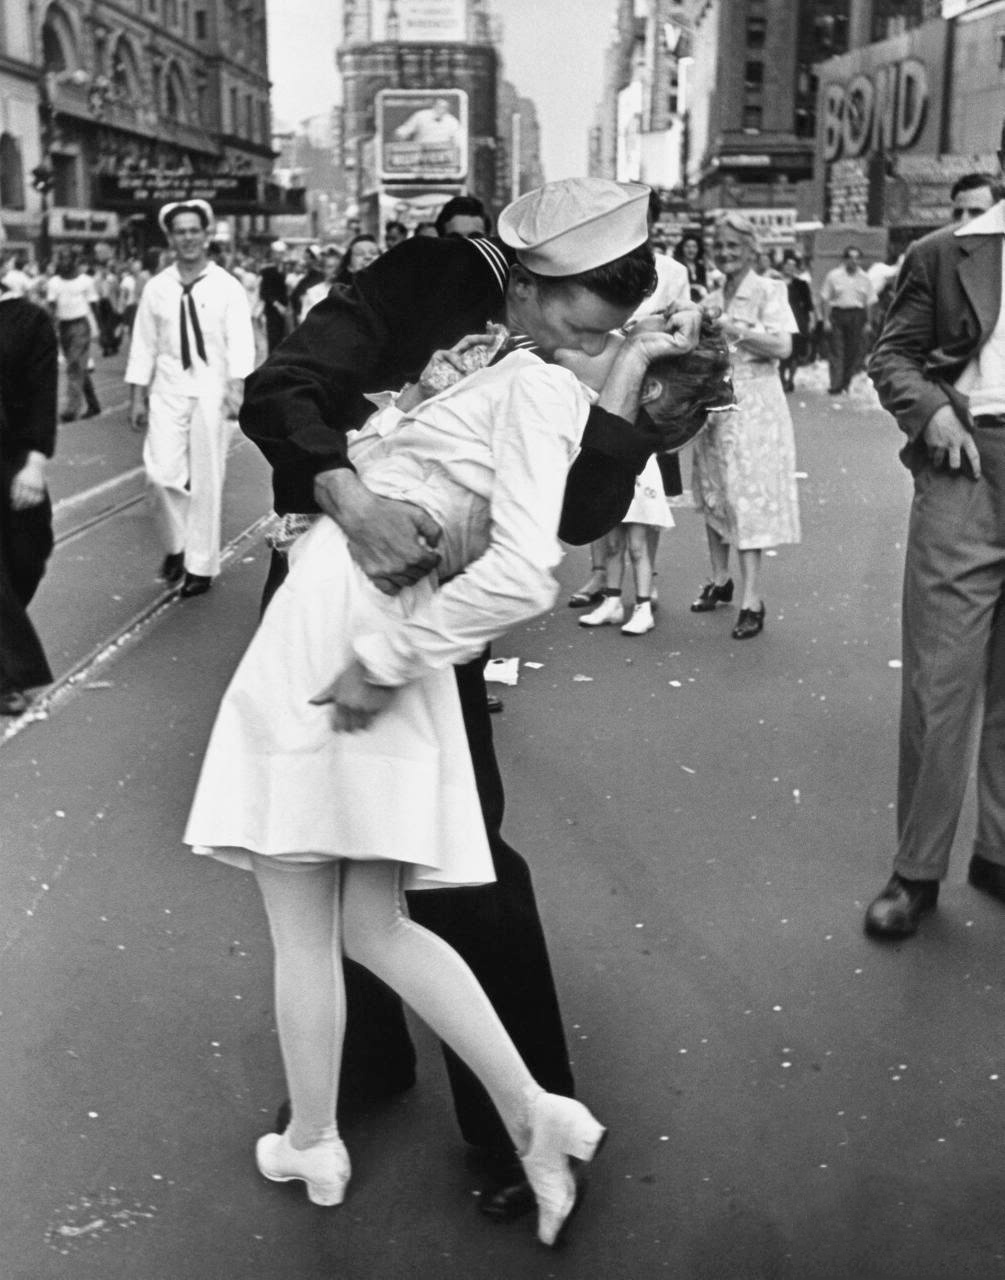 A jubilant American sailor clutching a pretty white-uniformed nurse in a joyful, back-bending, passionate kiss while thousands jam the Times Square area to celebrate the long awaited victory over Japan.